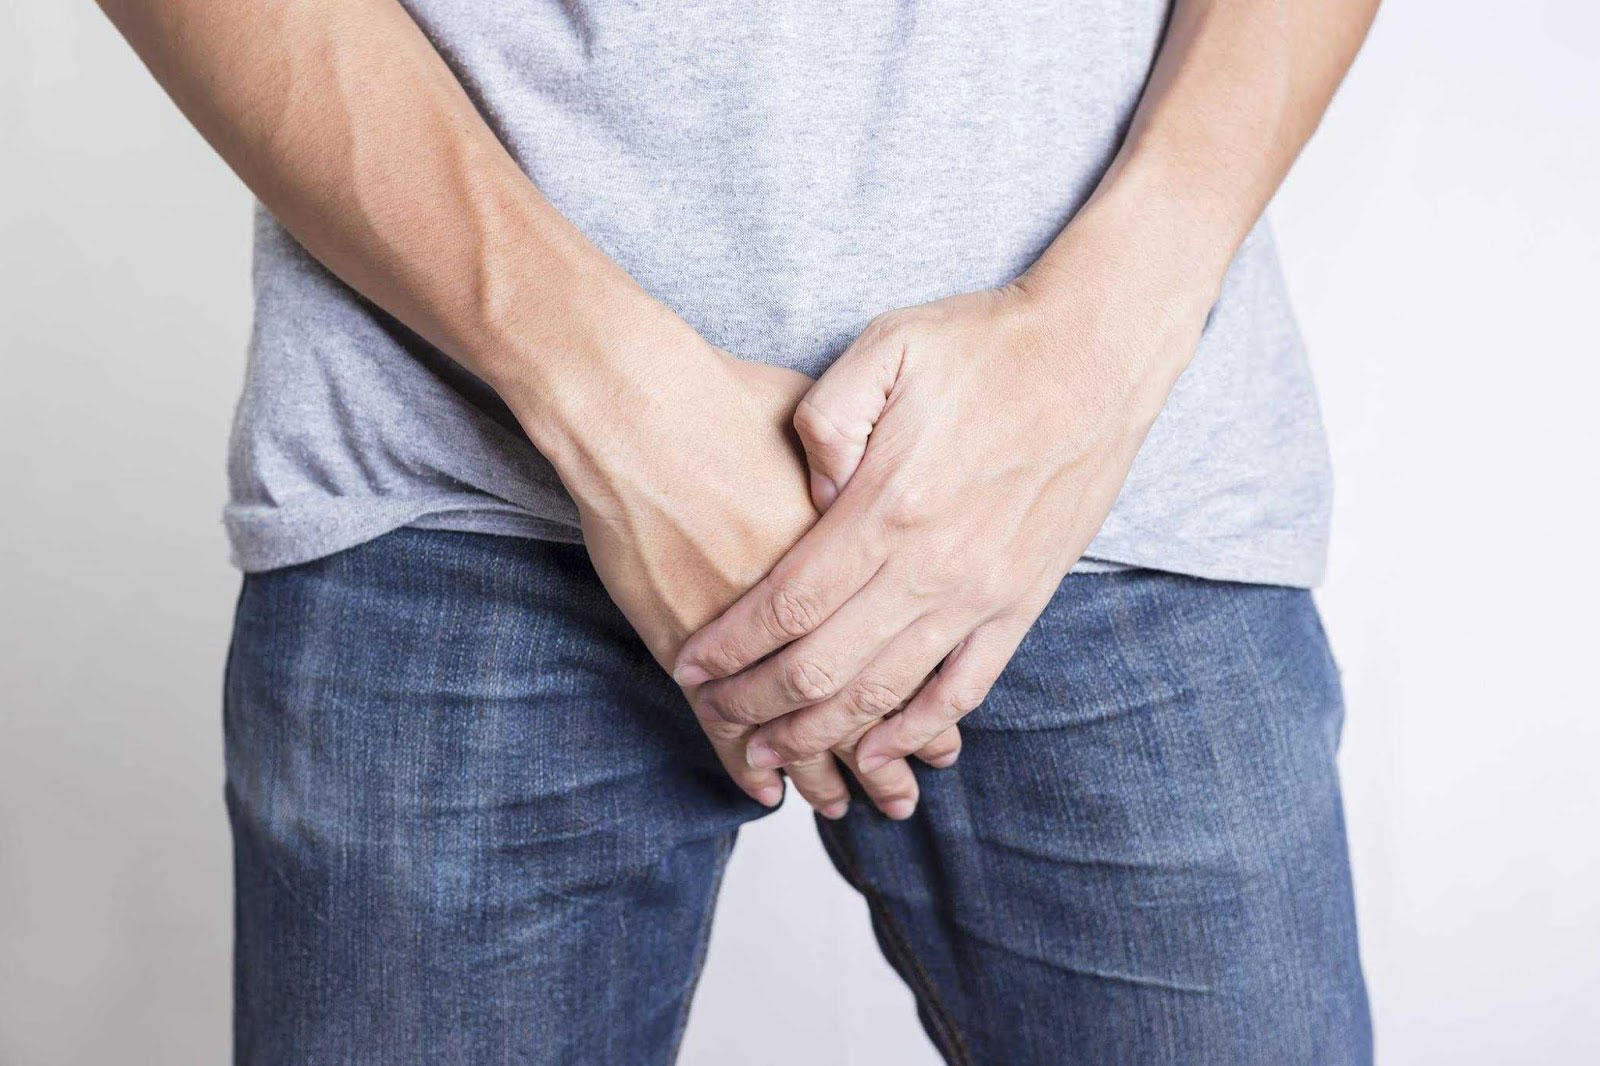 A combination immune therapy could reduce genital herpes